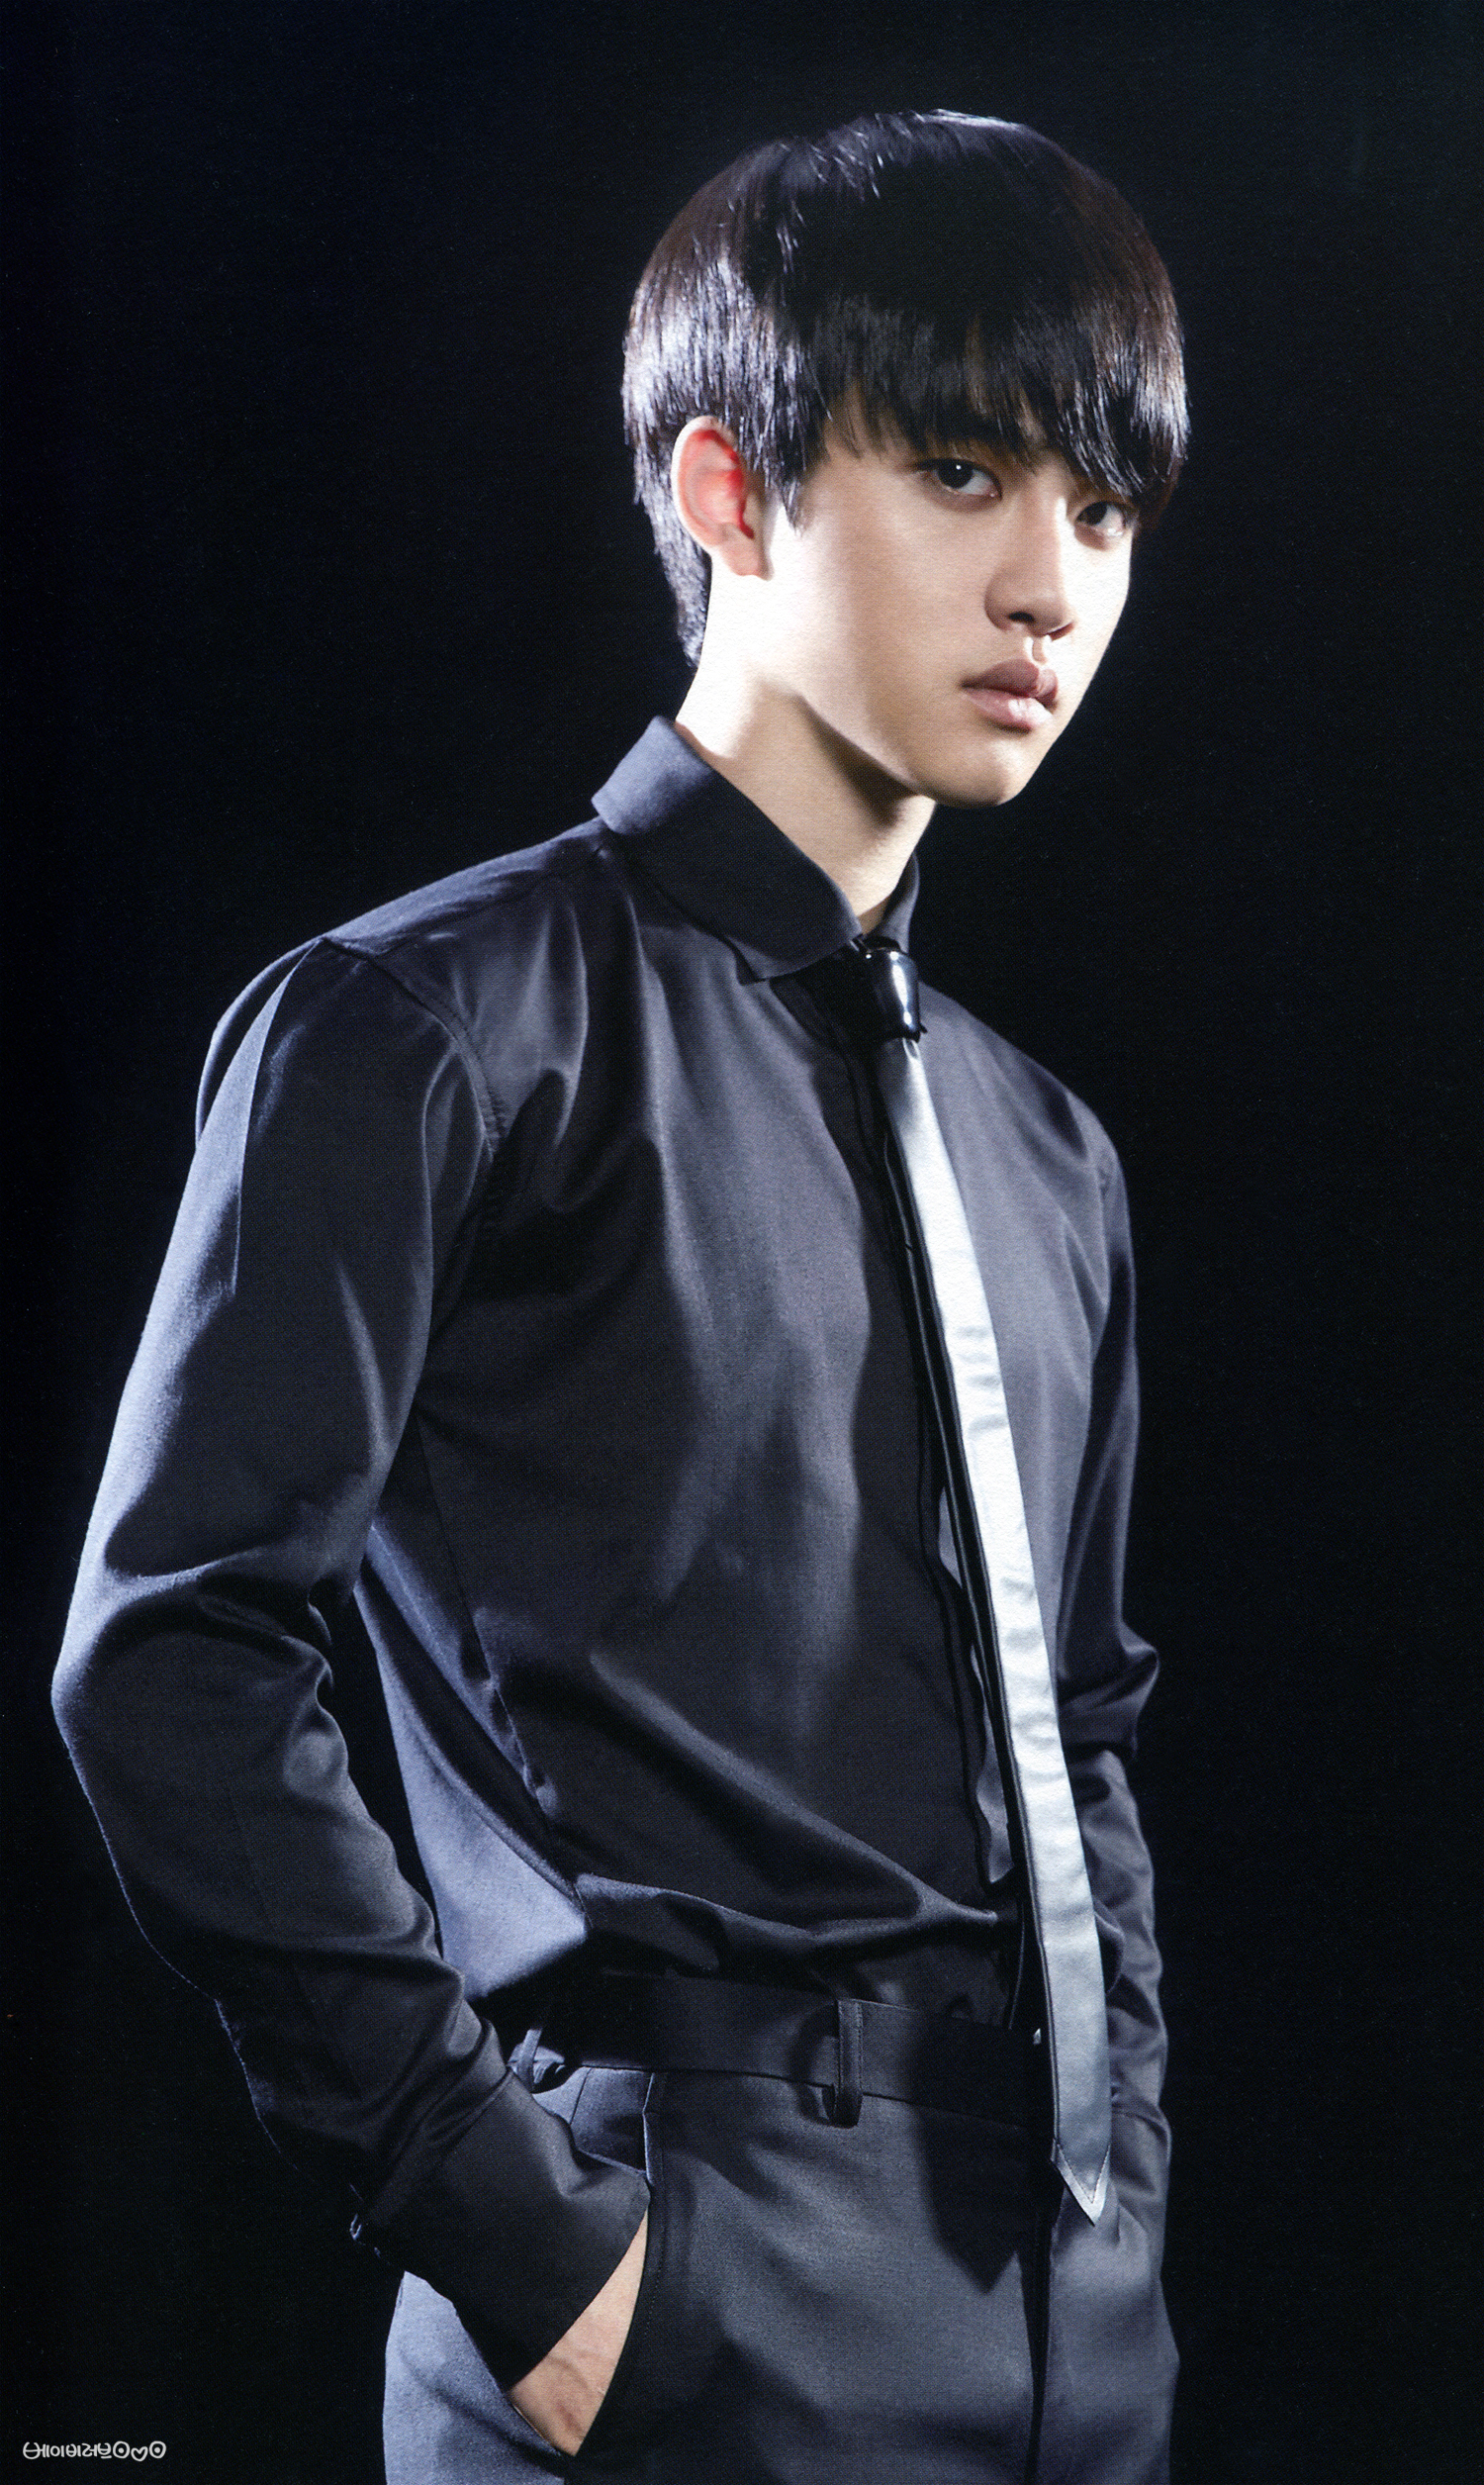 Exo Android Iphone Wallpaper Asiachan Kpop Jpop Image Board